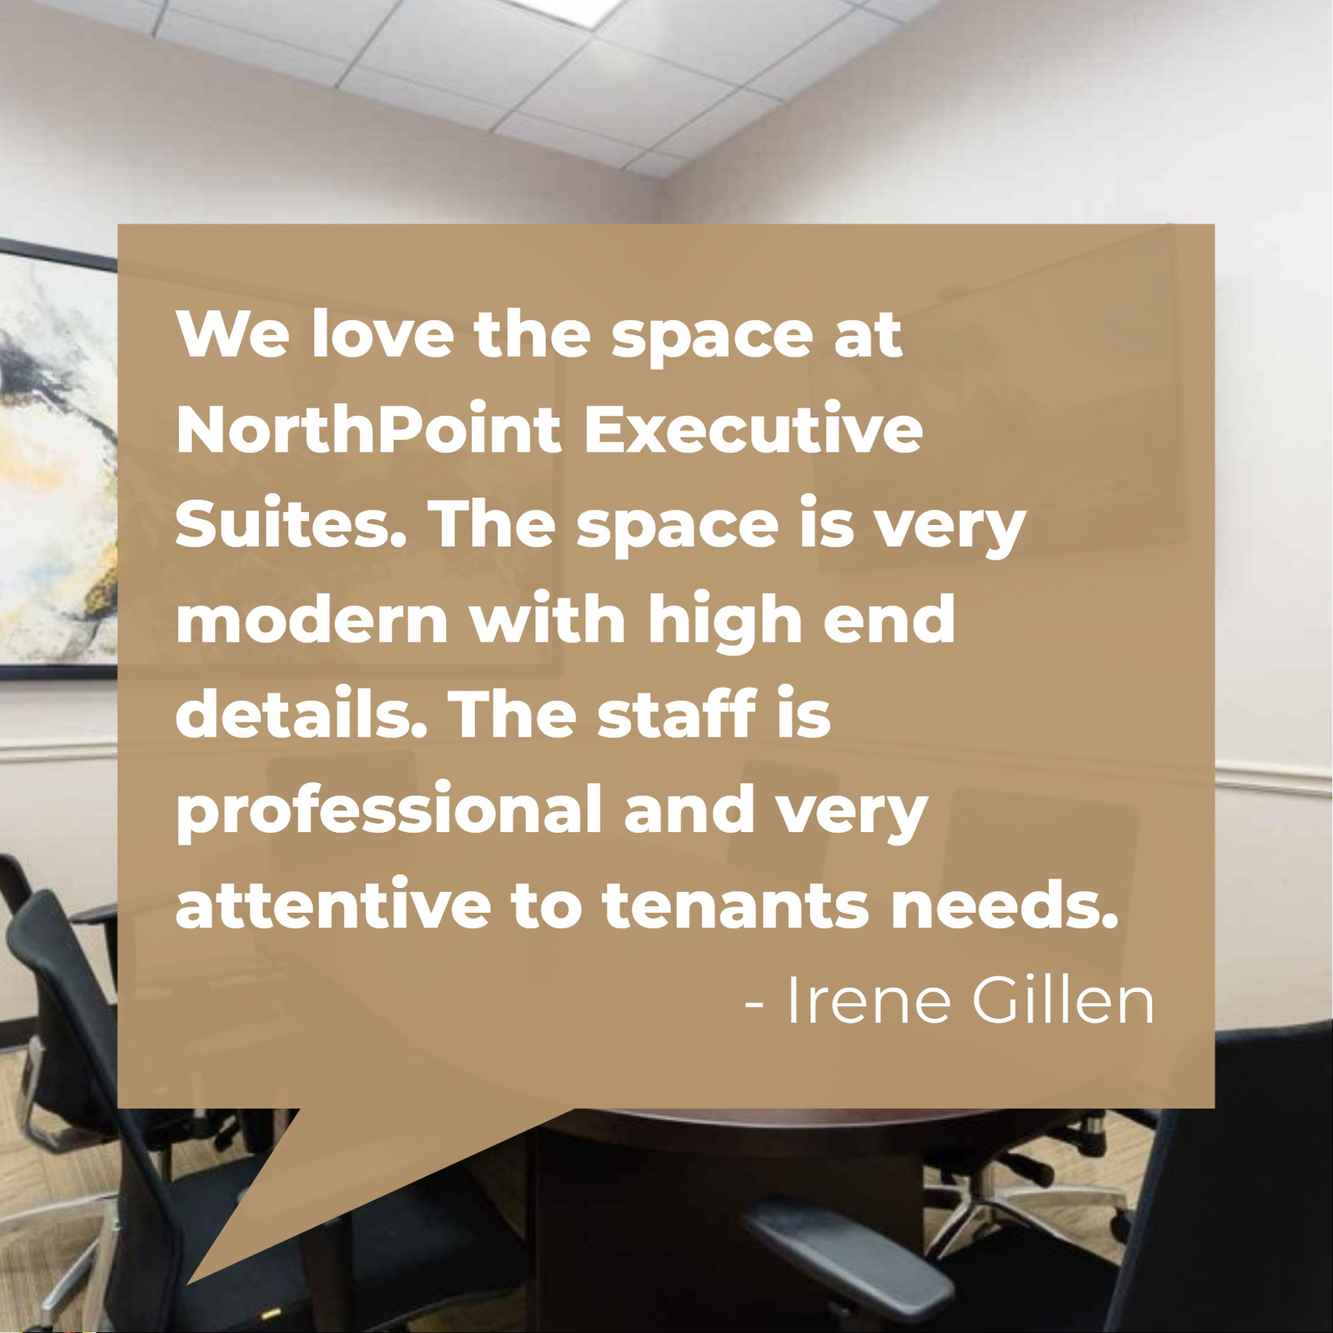 Irene Gillen loves the modern office environment at NorthPoint Executive Suites.